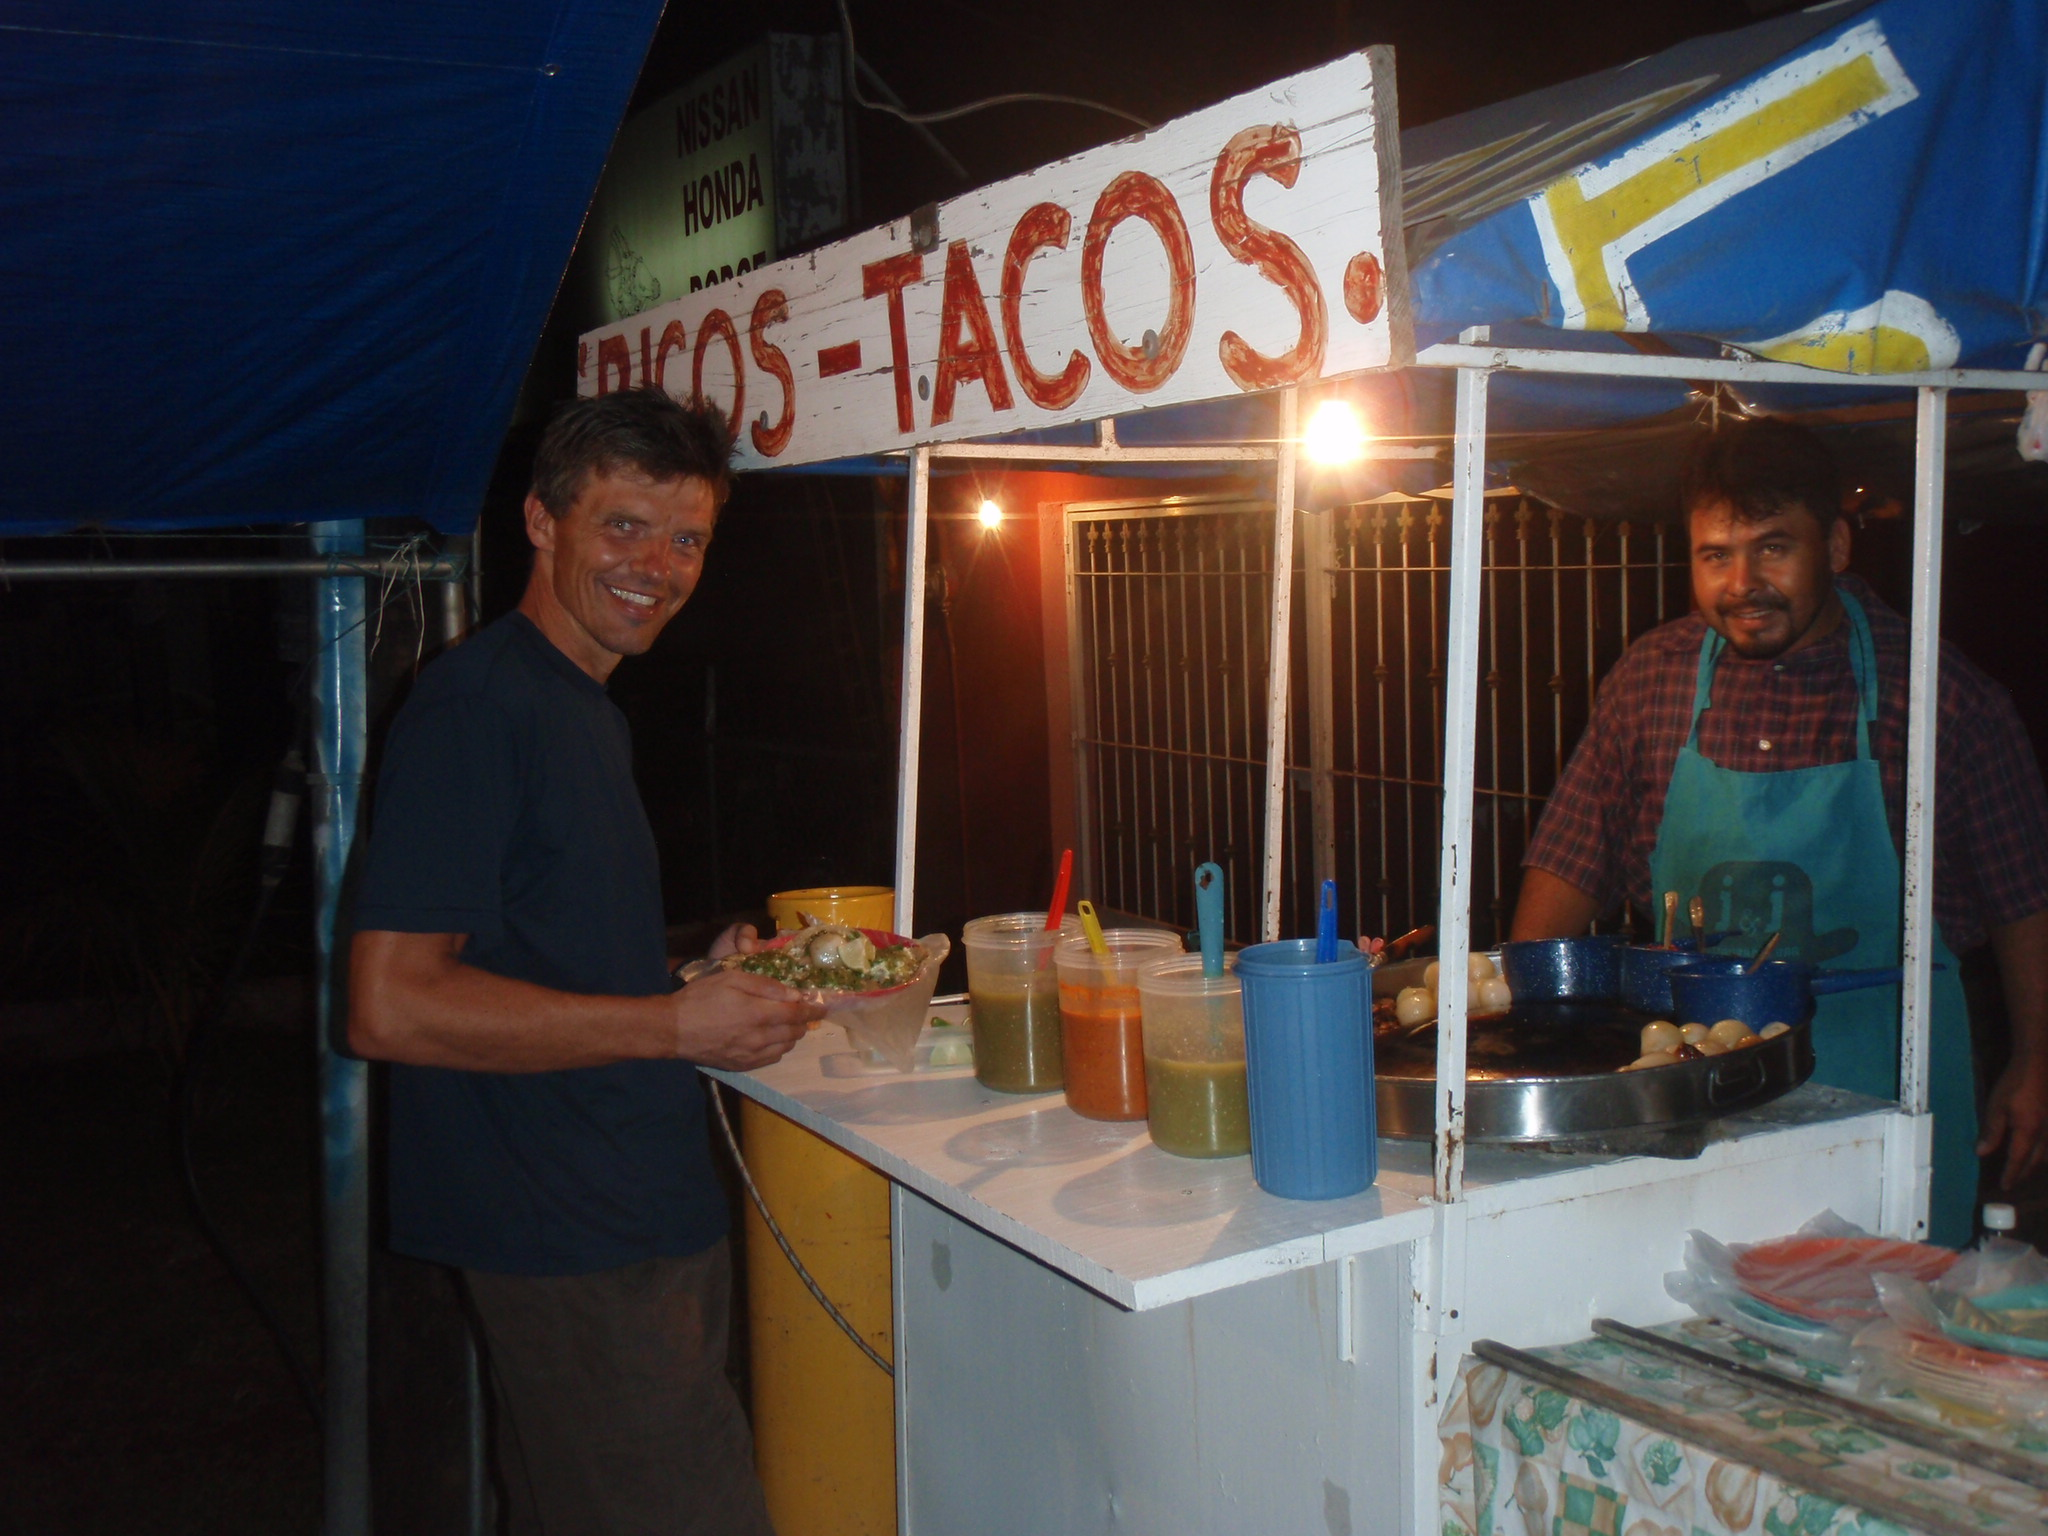 Dinner at Ricos Tacos after a tiring day to Tepic